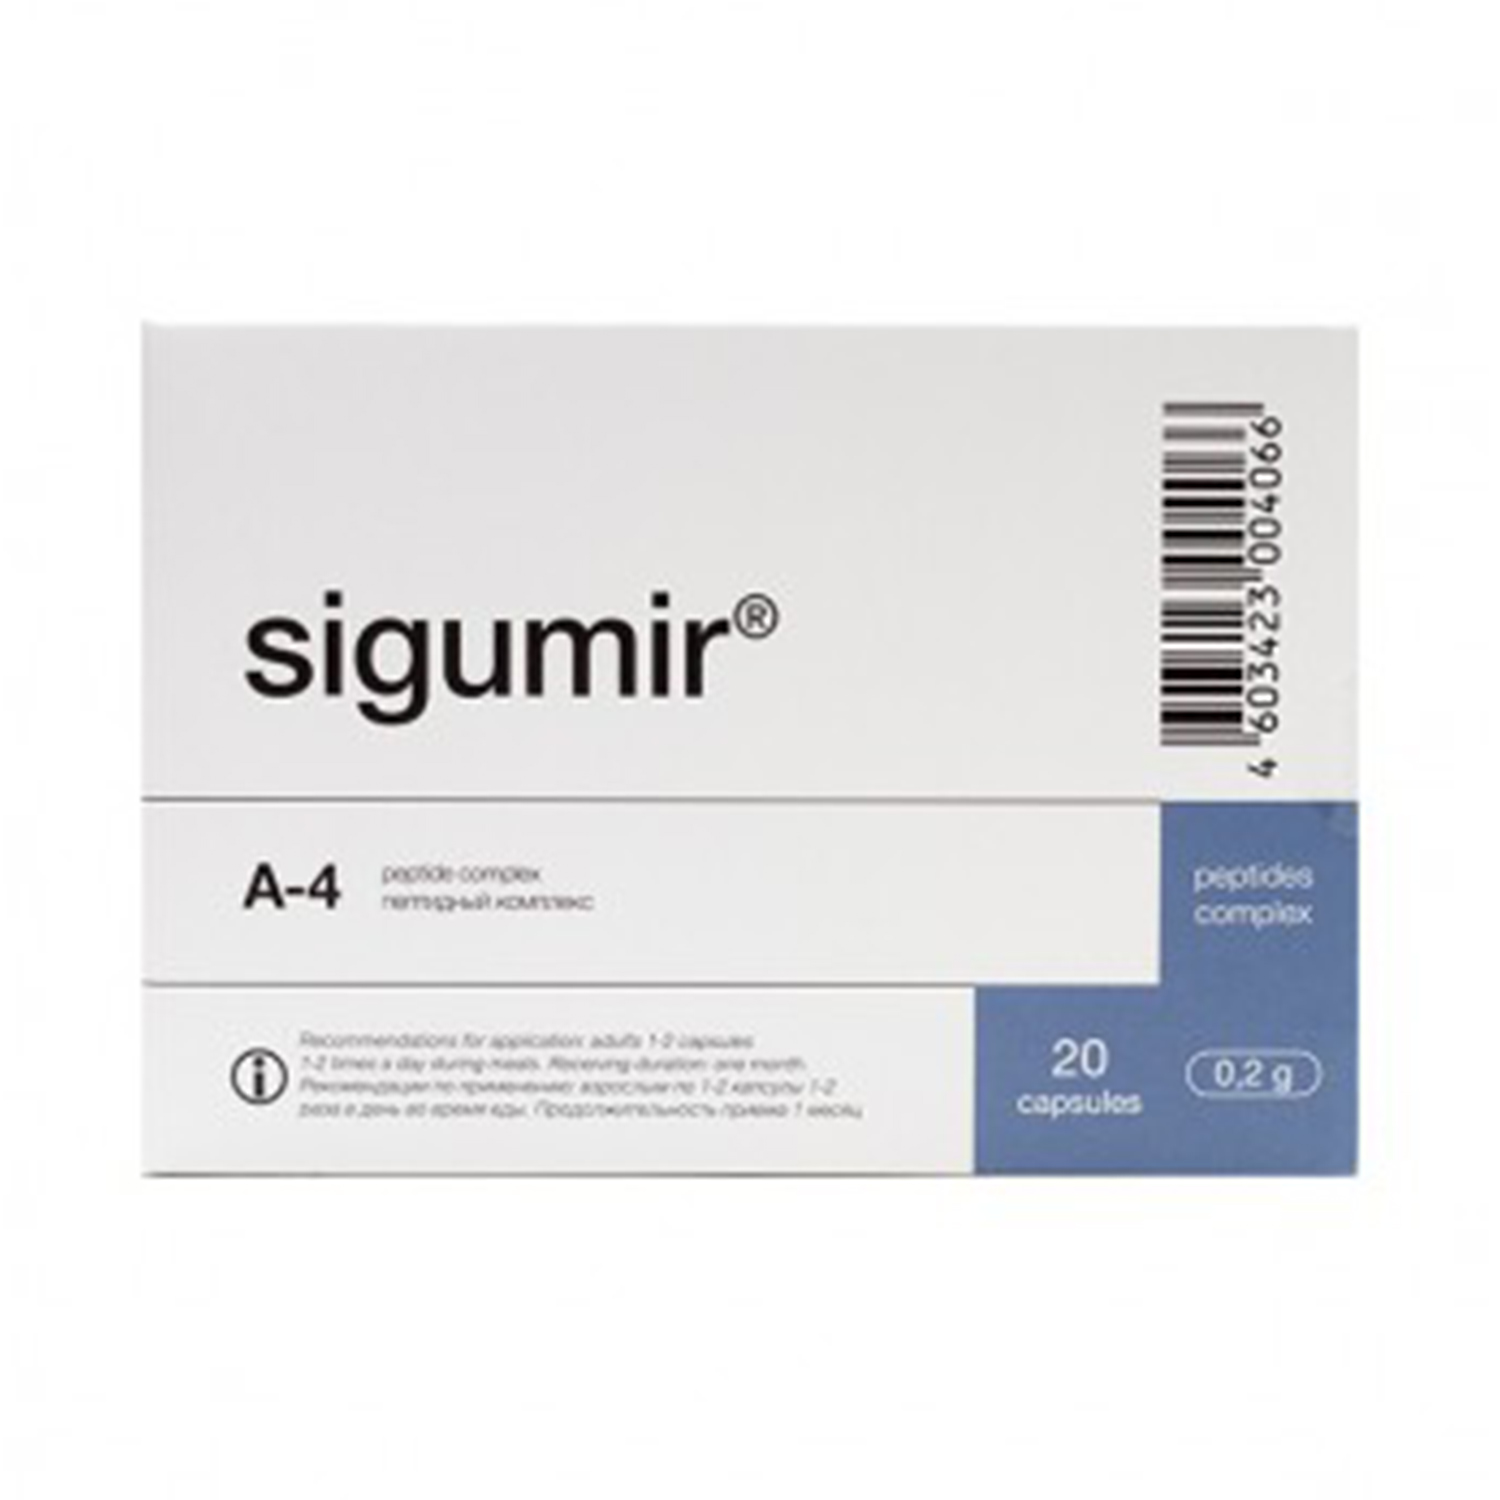 Sigumir (peptide bioregulator Cartilage)